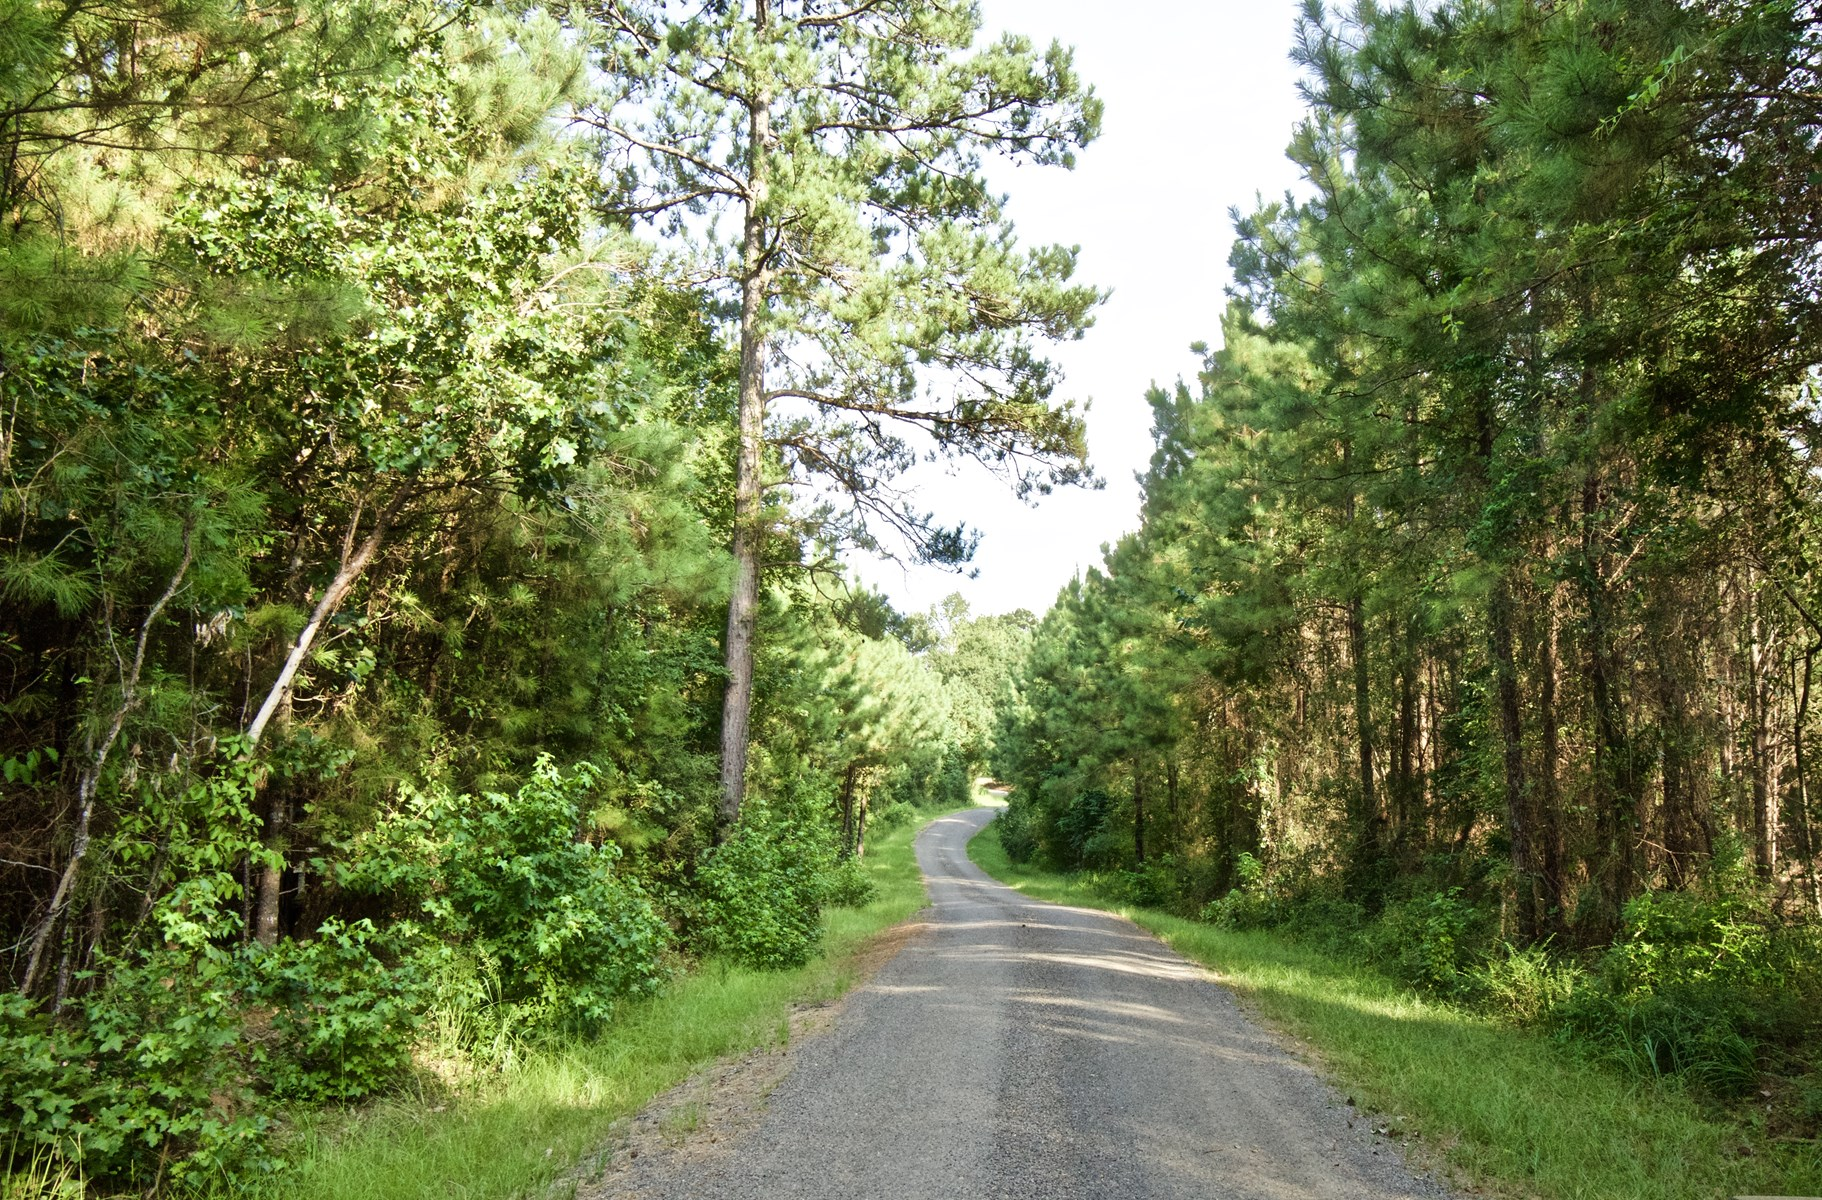 LOT FOR SALE - 4 ACRES - SAILES, LA